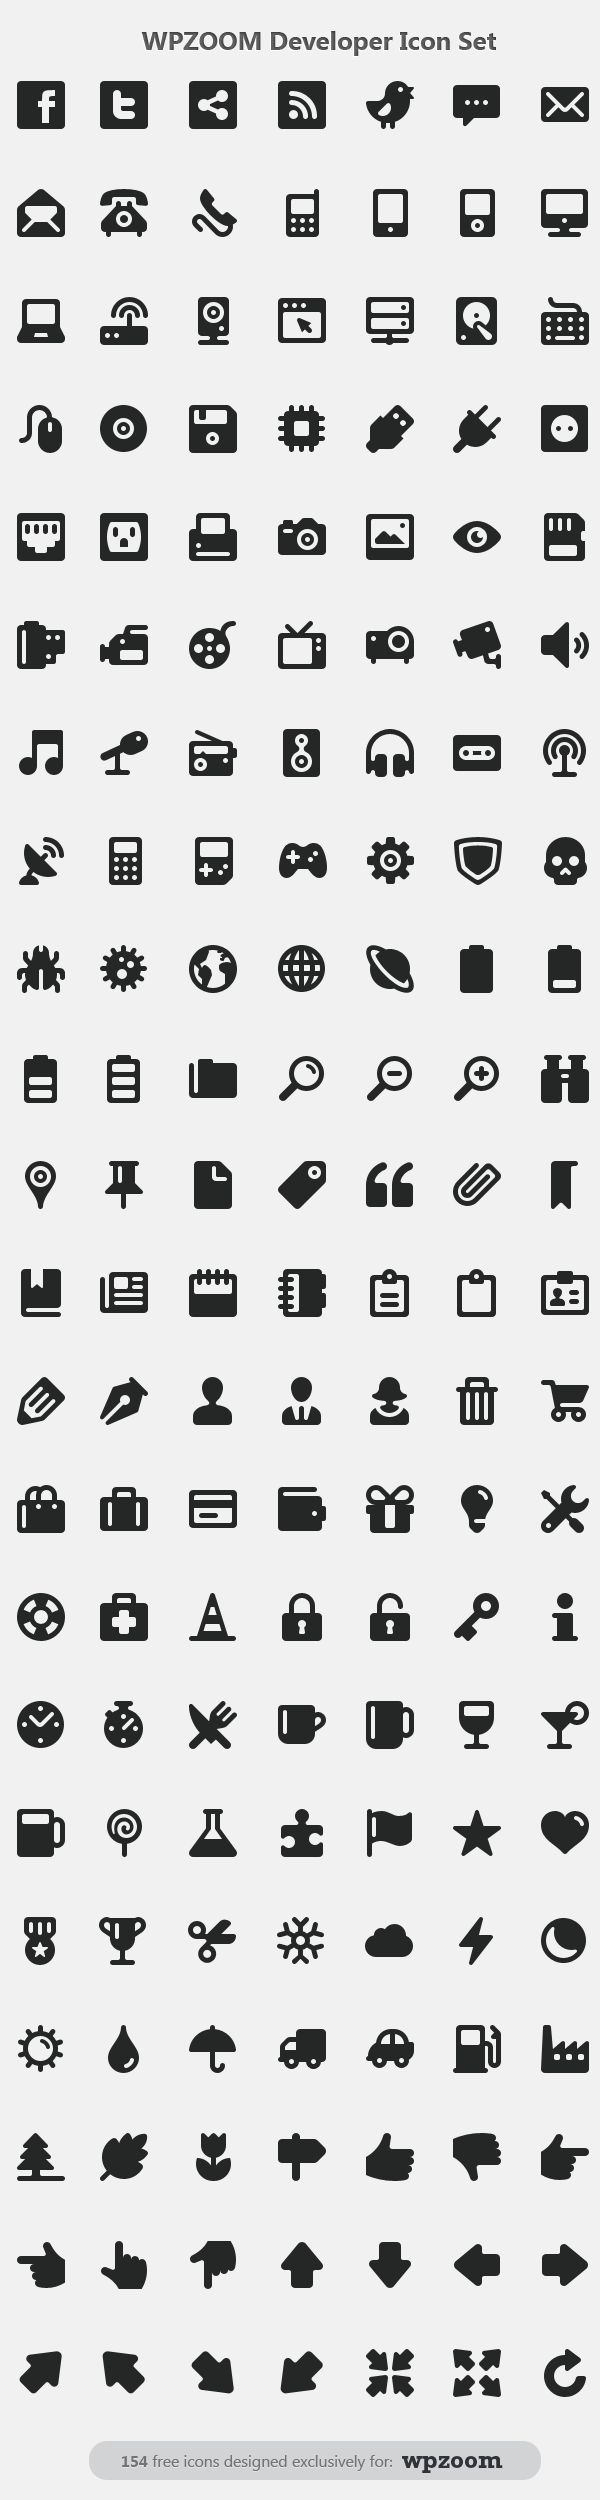 Developer Icon Set